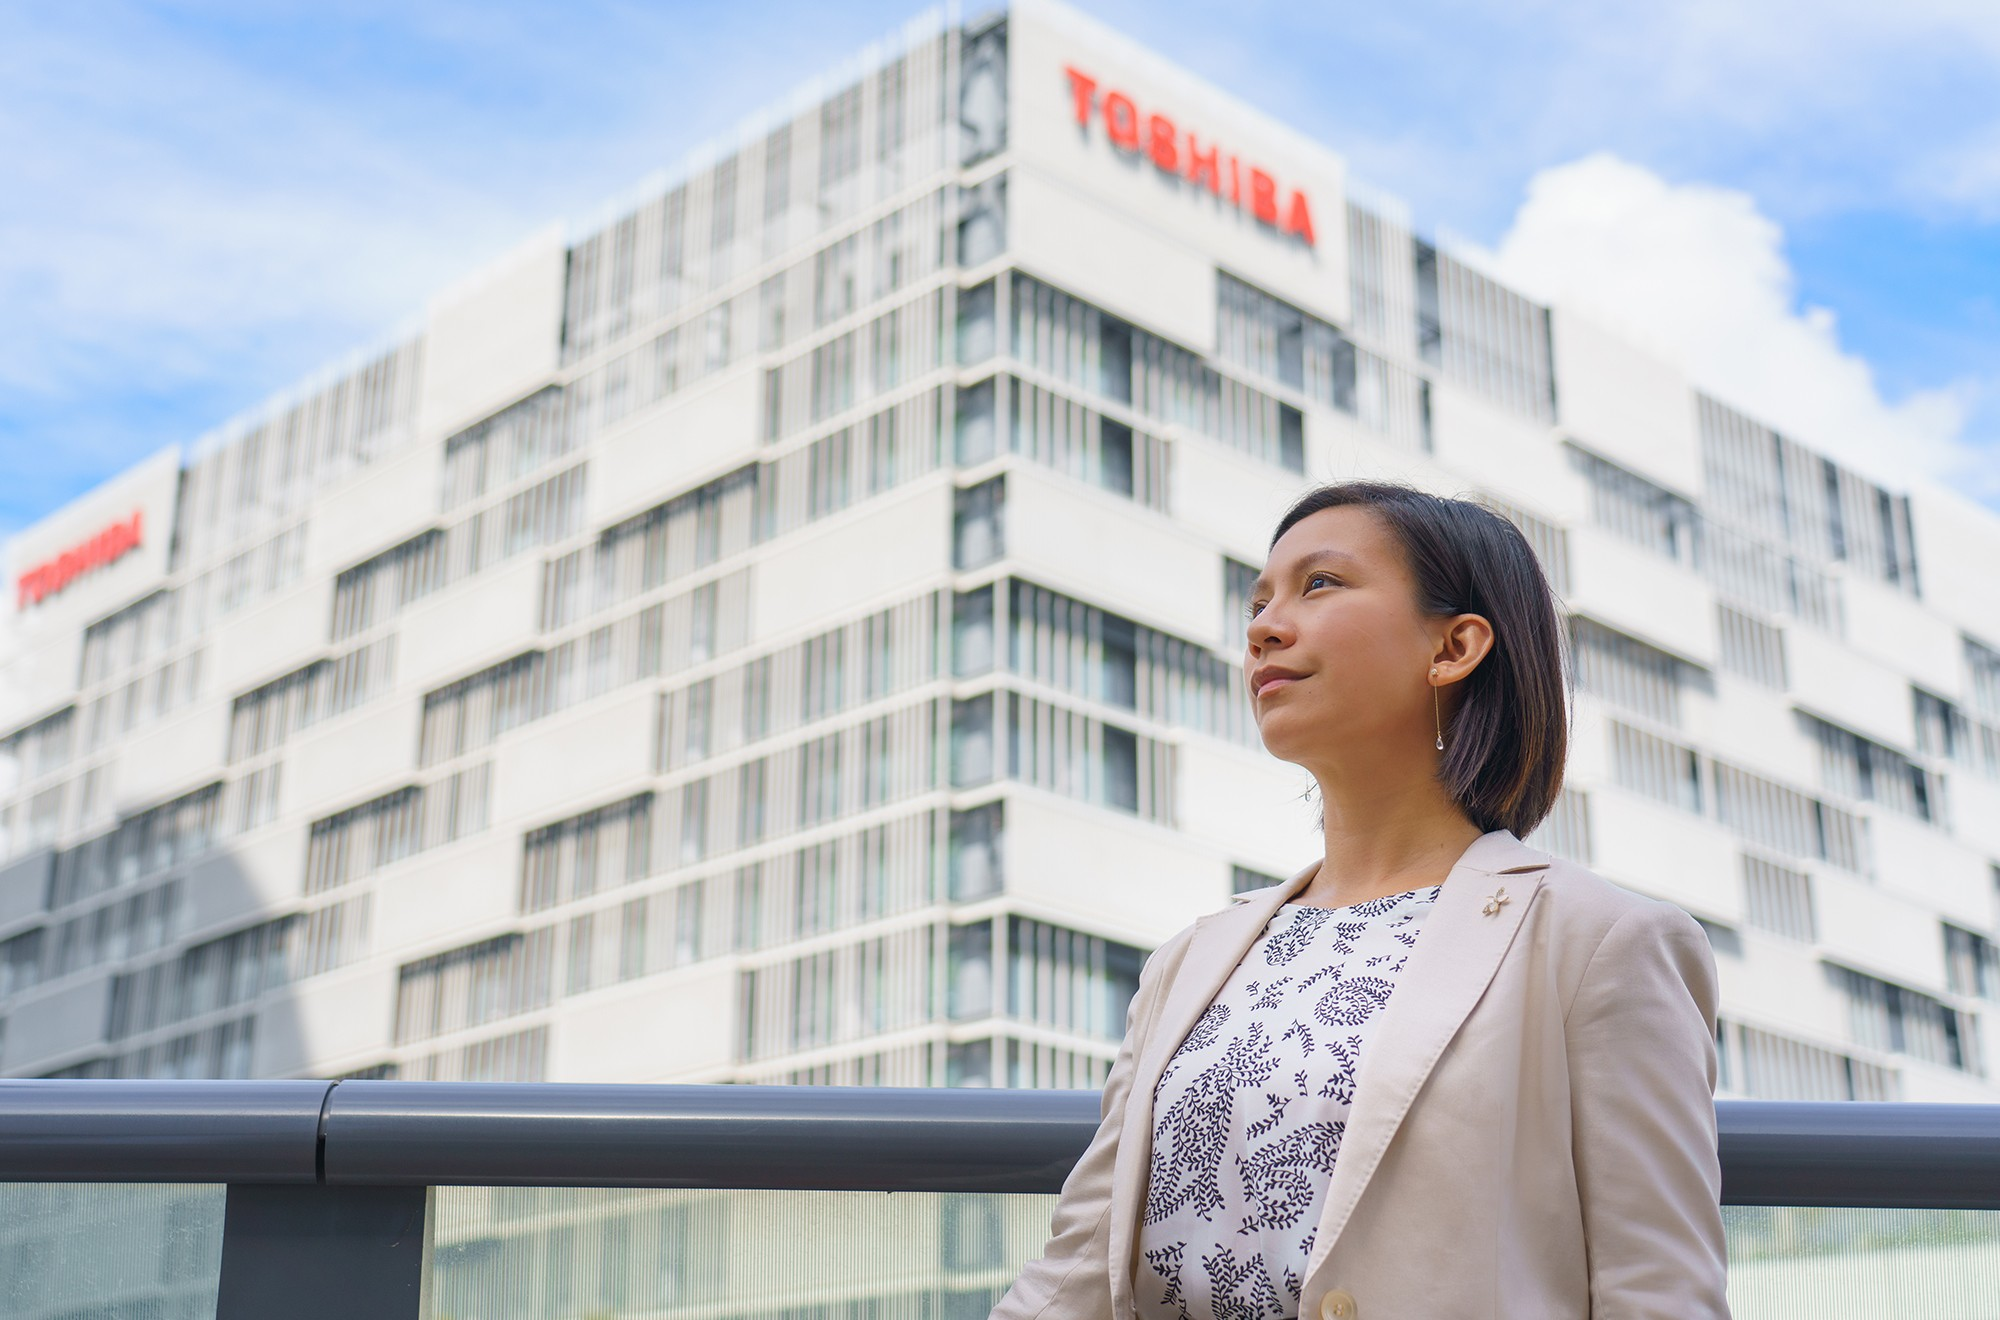 Toshiba's young engineers  ~Bringing reliable railway technologies to a wider world~